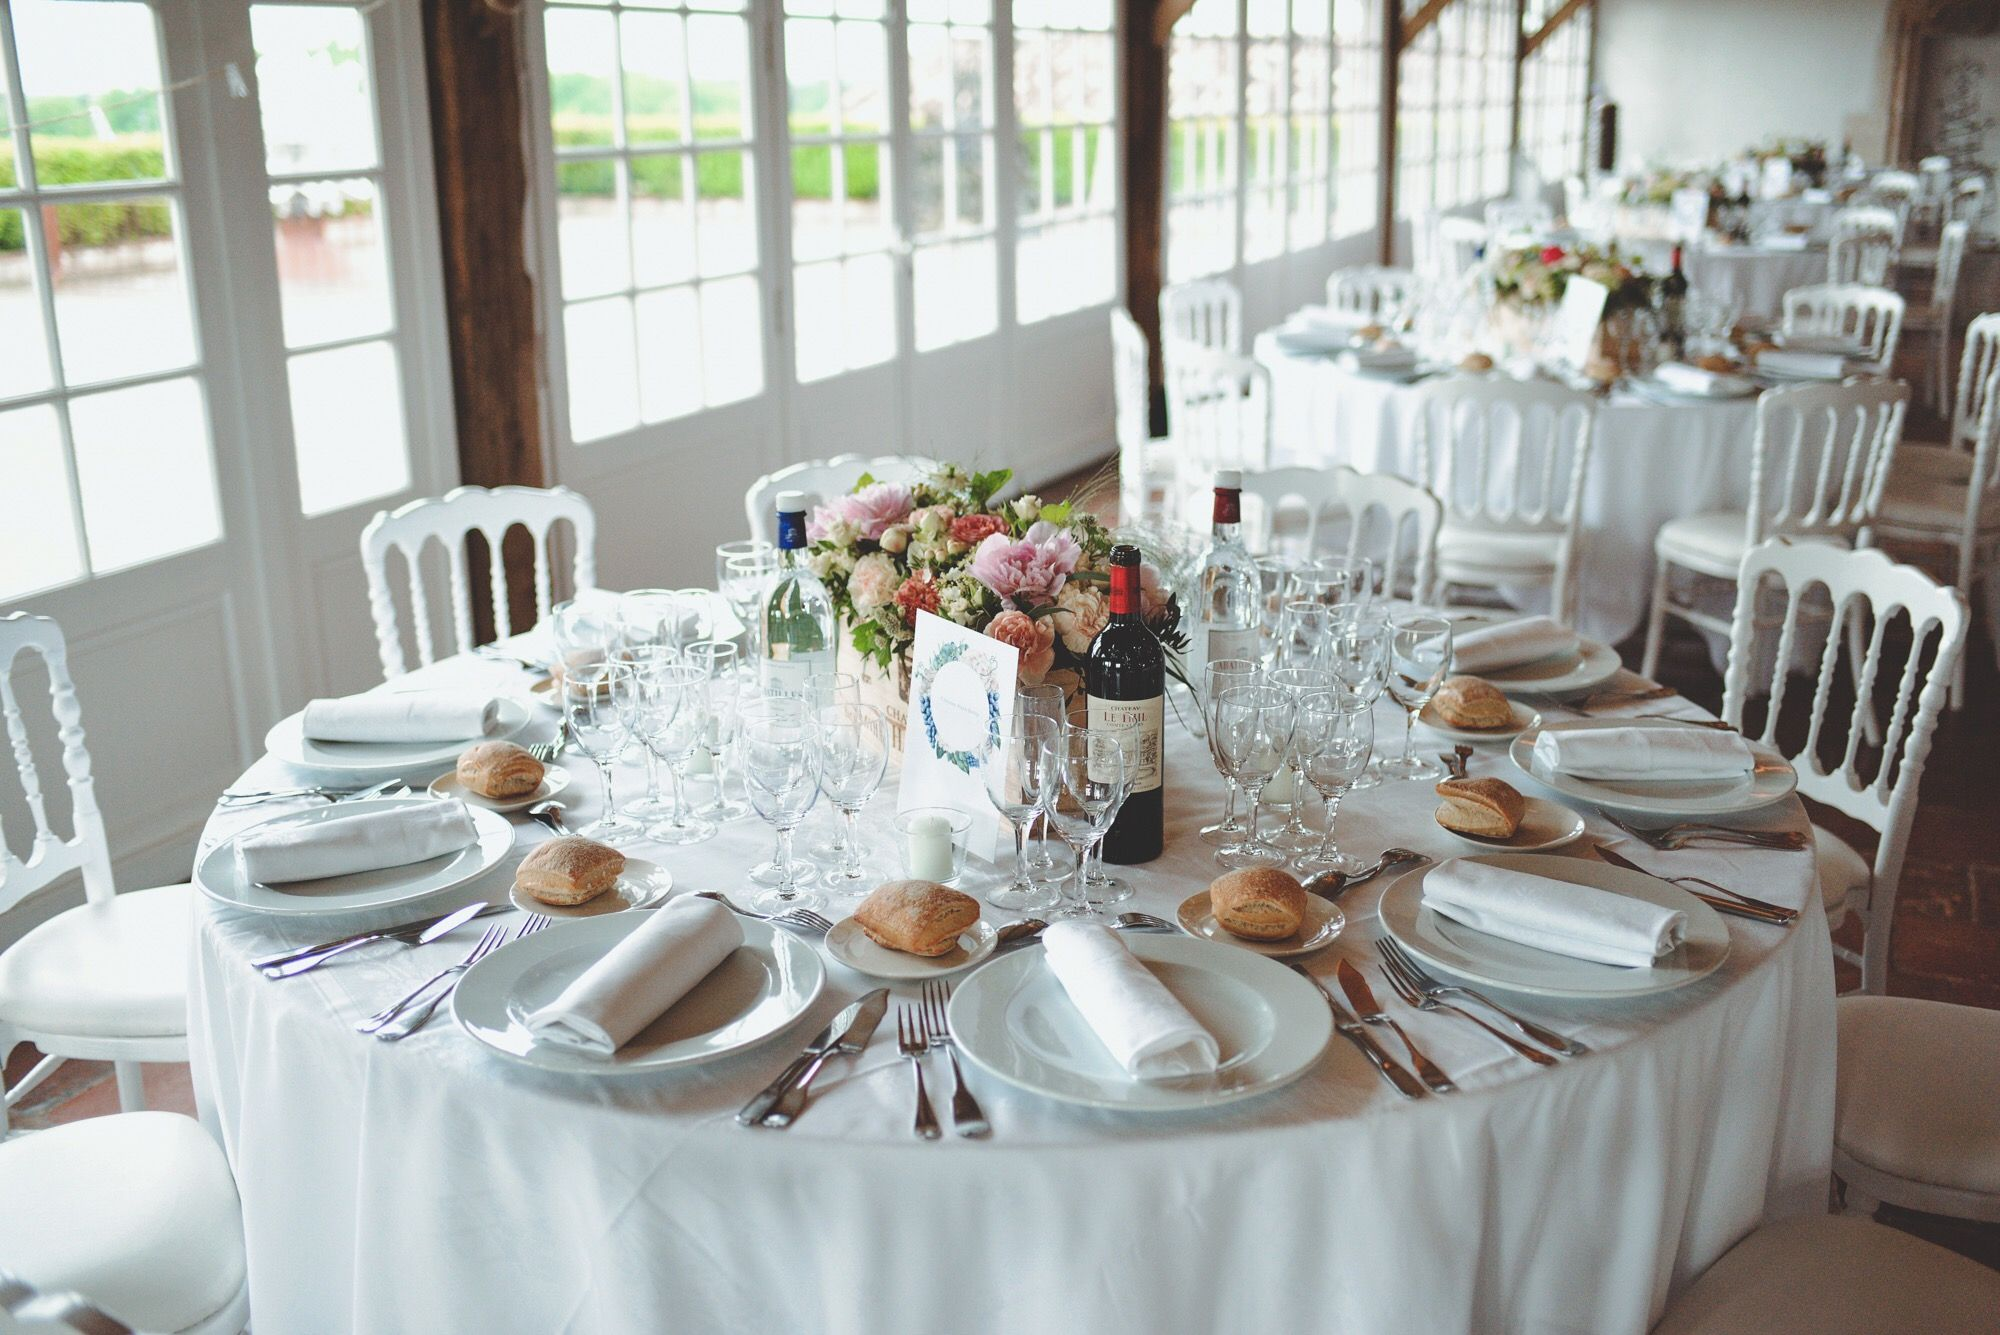 Wedding Table Decorations, Wine Cases And Flowers Destination Wedding Planner,